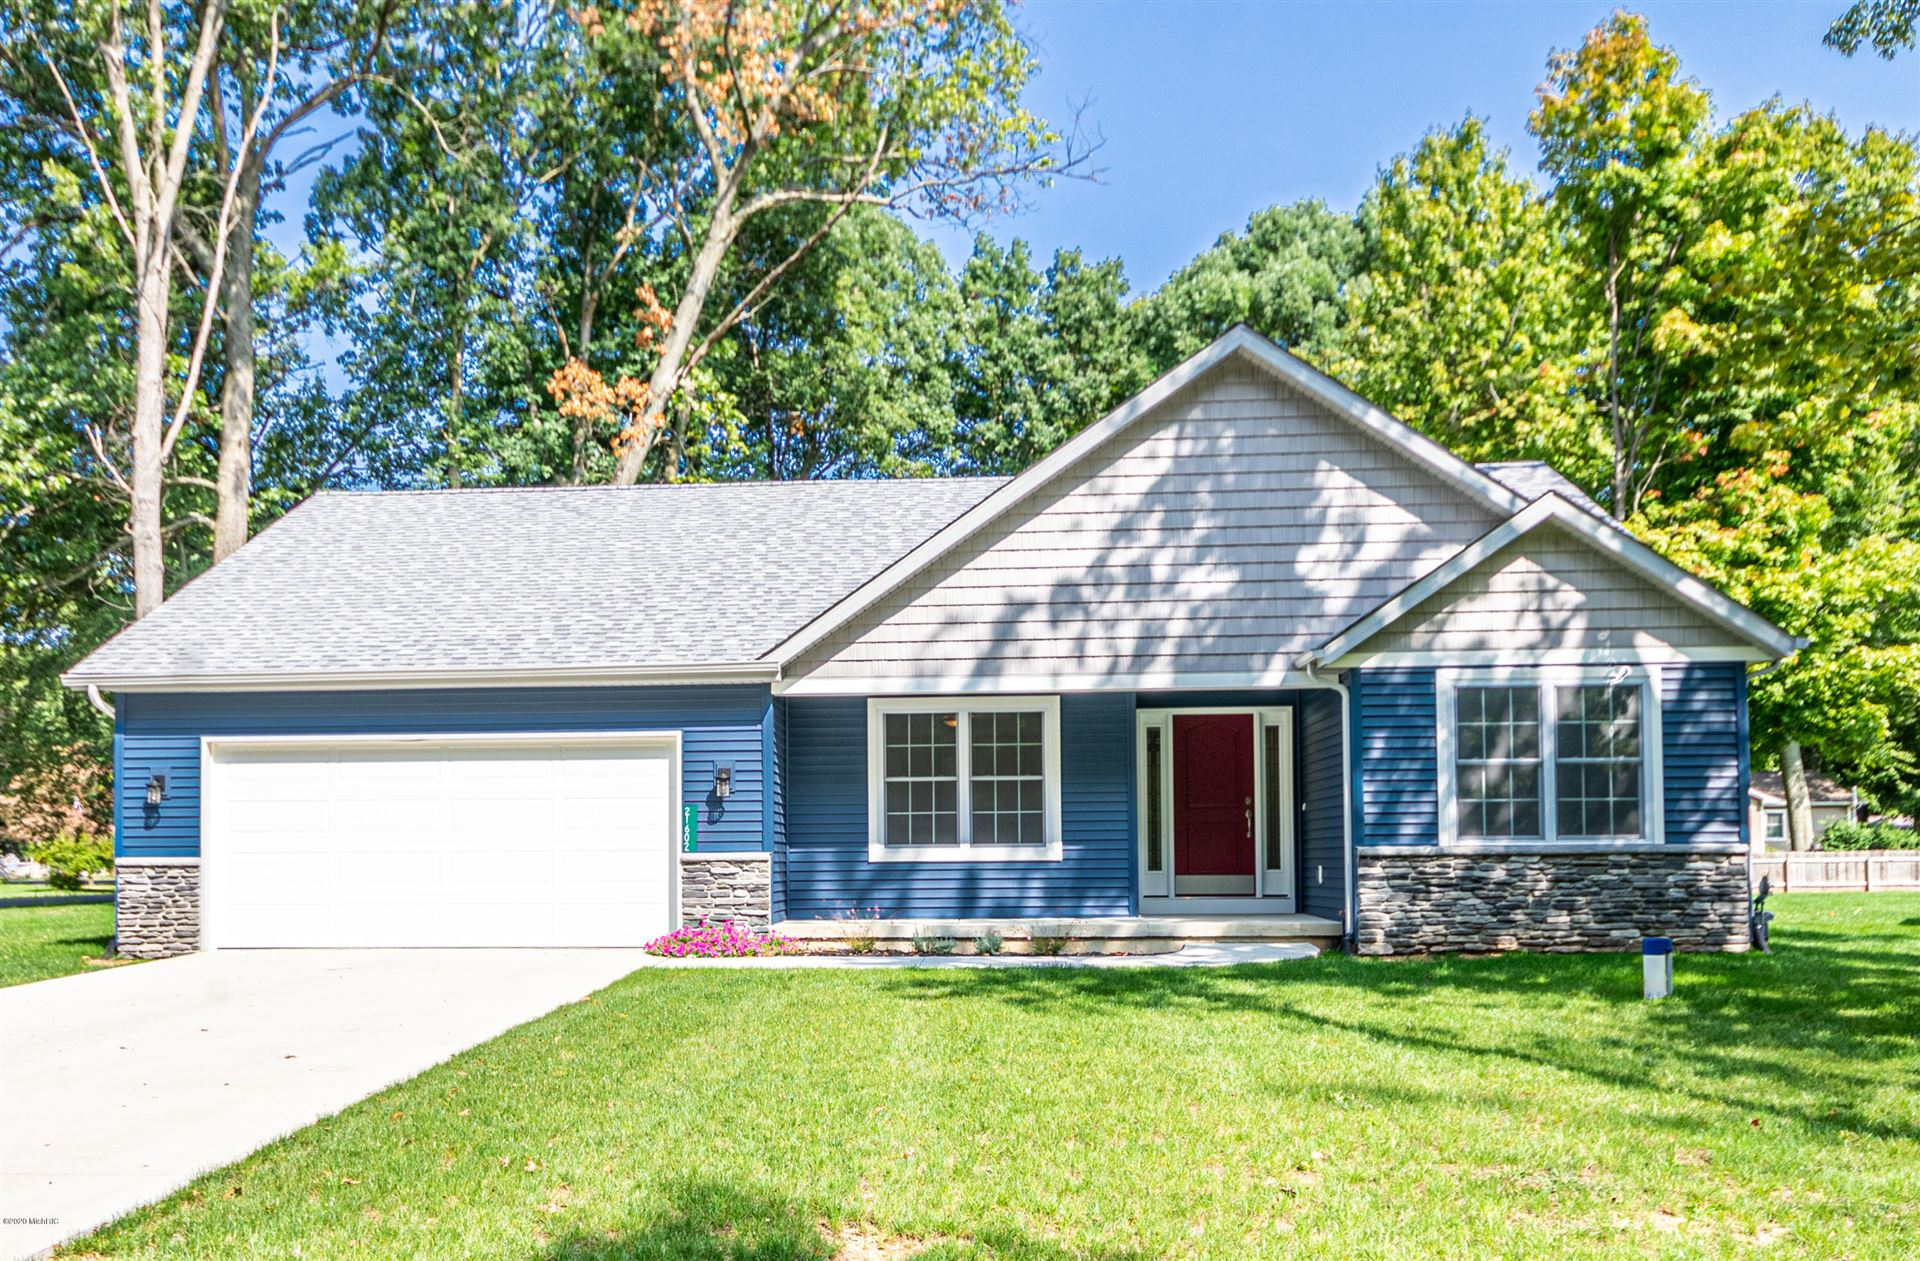 21602 Maple Glen Circle, Edwardsburg, MI 49112 - MLS#: 20038829